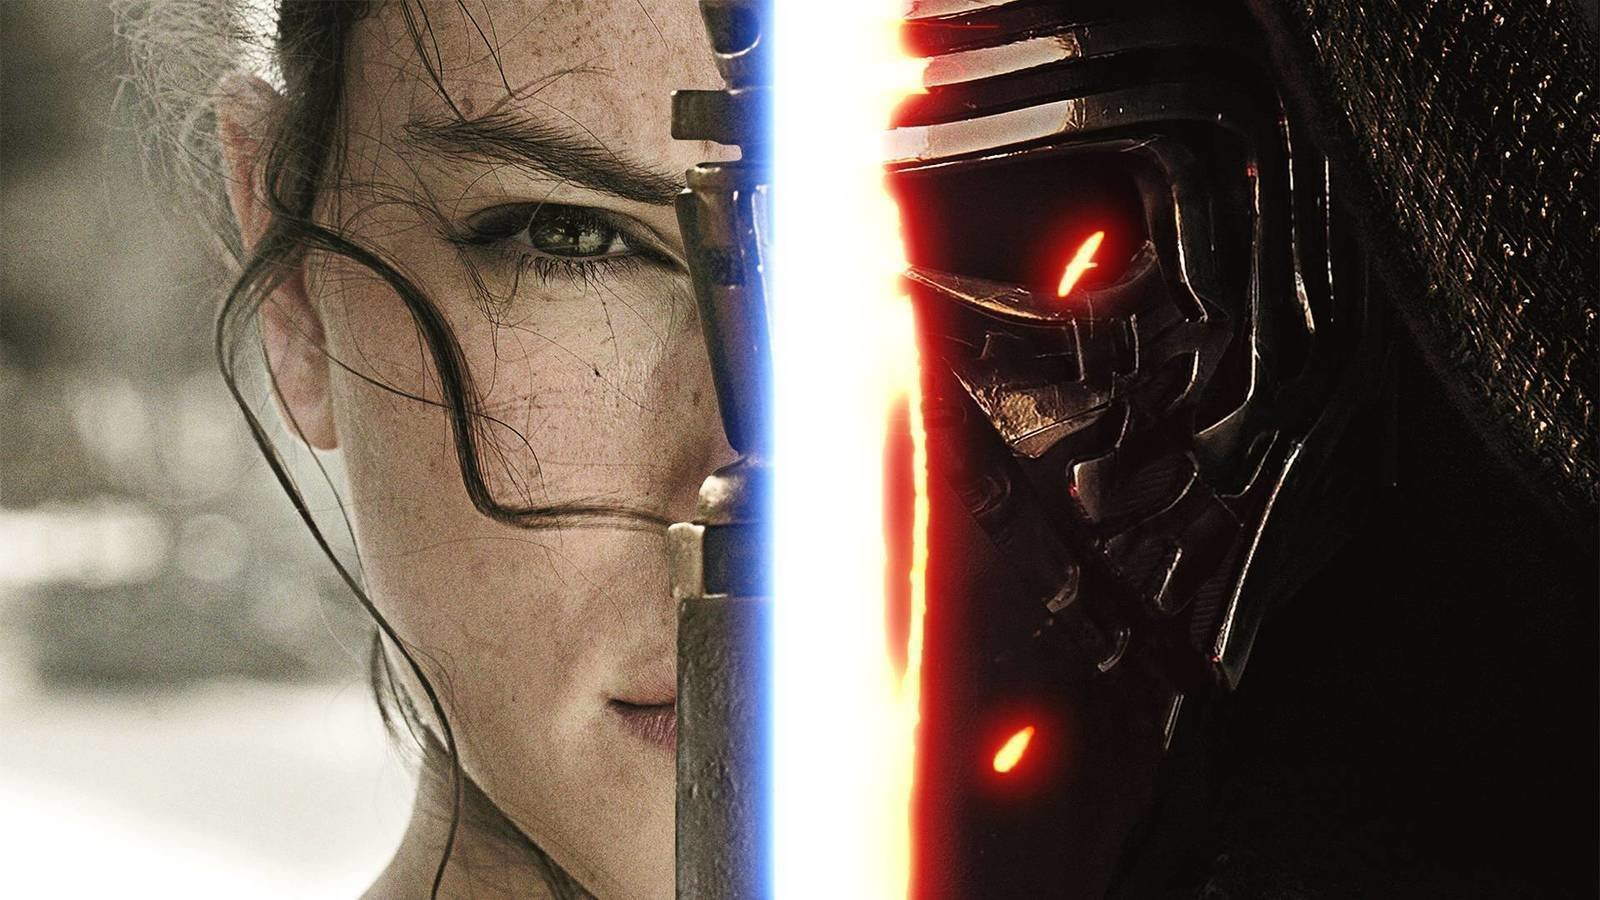 Petition Kathleen Have Rey Andkylo Ren Form A Romantic Relationship In The Next Star Wars Installments Change Org